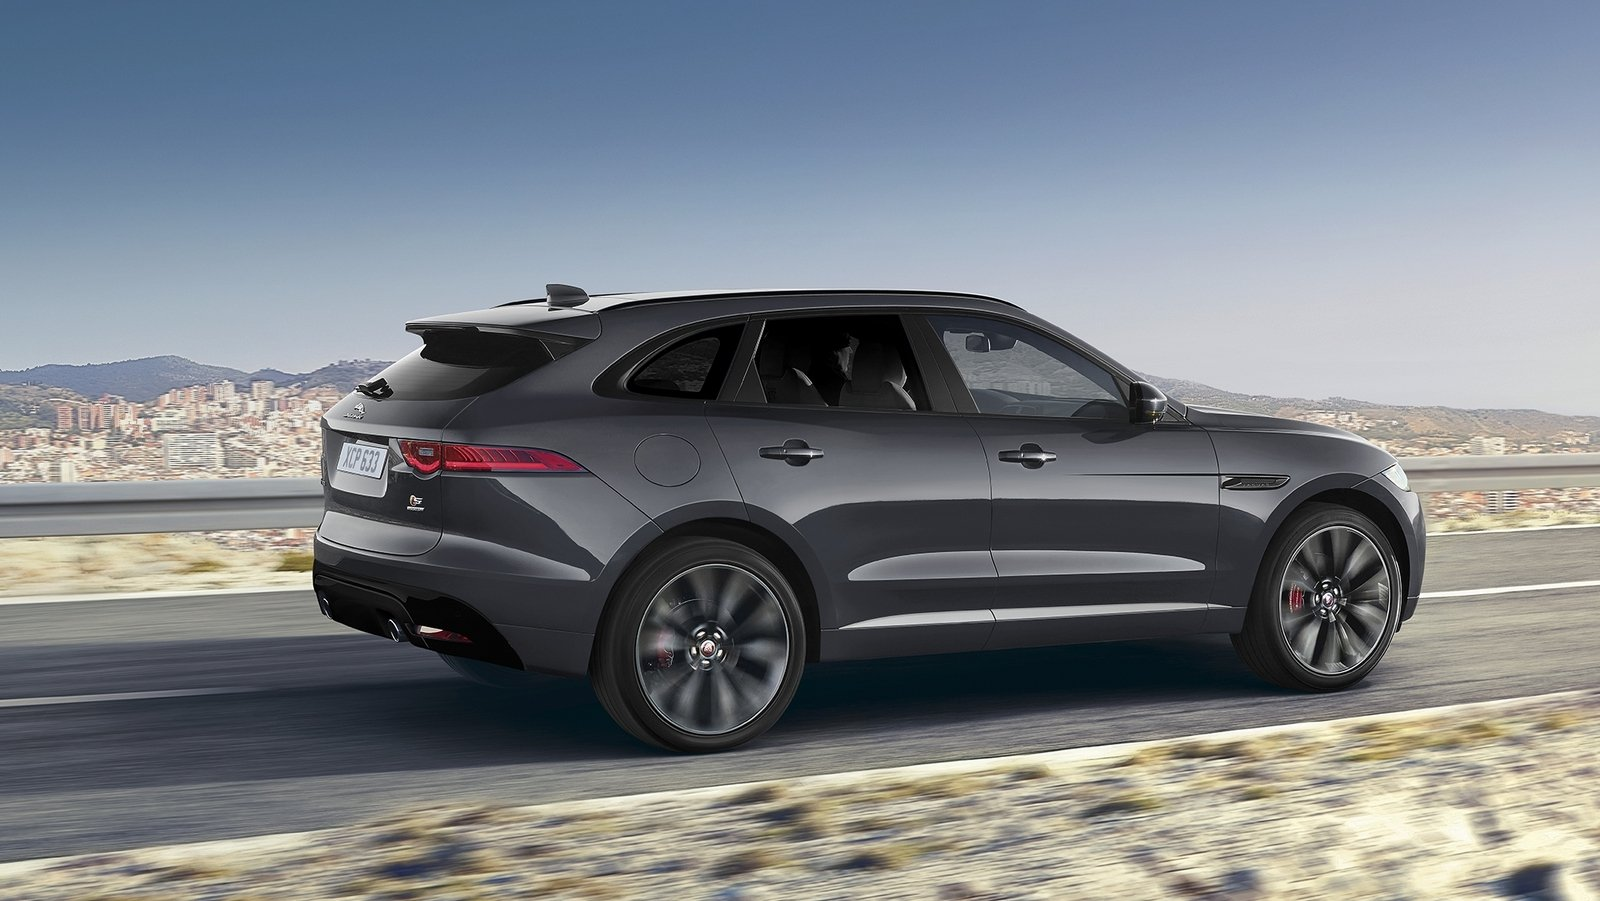 2017 jaguar f pace designer edition review top speed. Black Bedroom Furniture Sets. Home Design Ideas